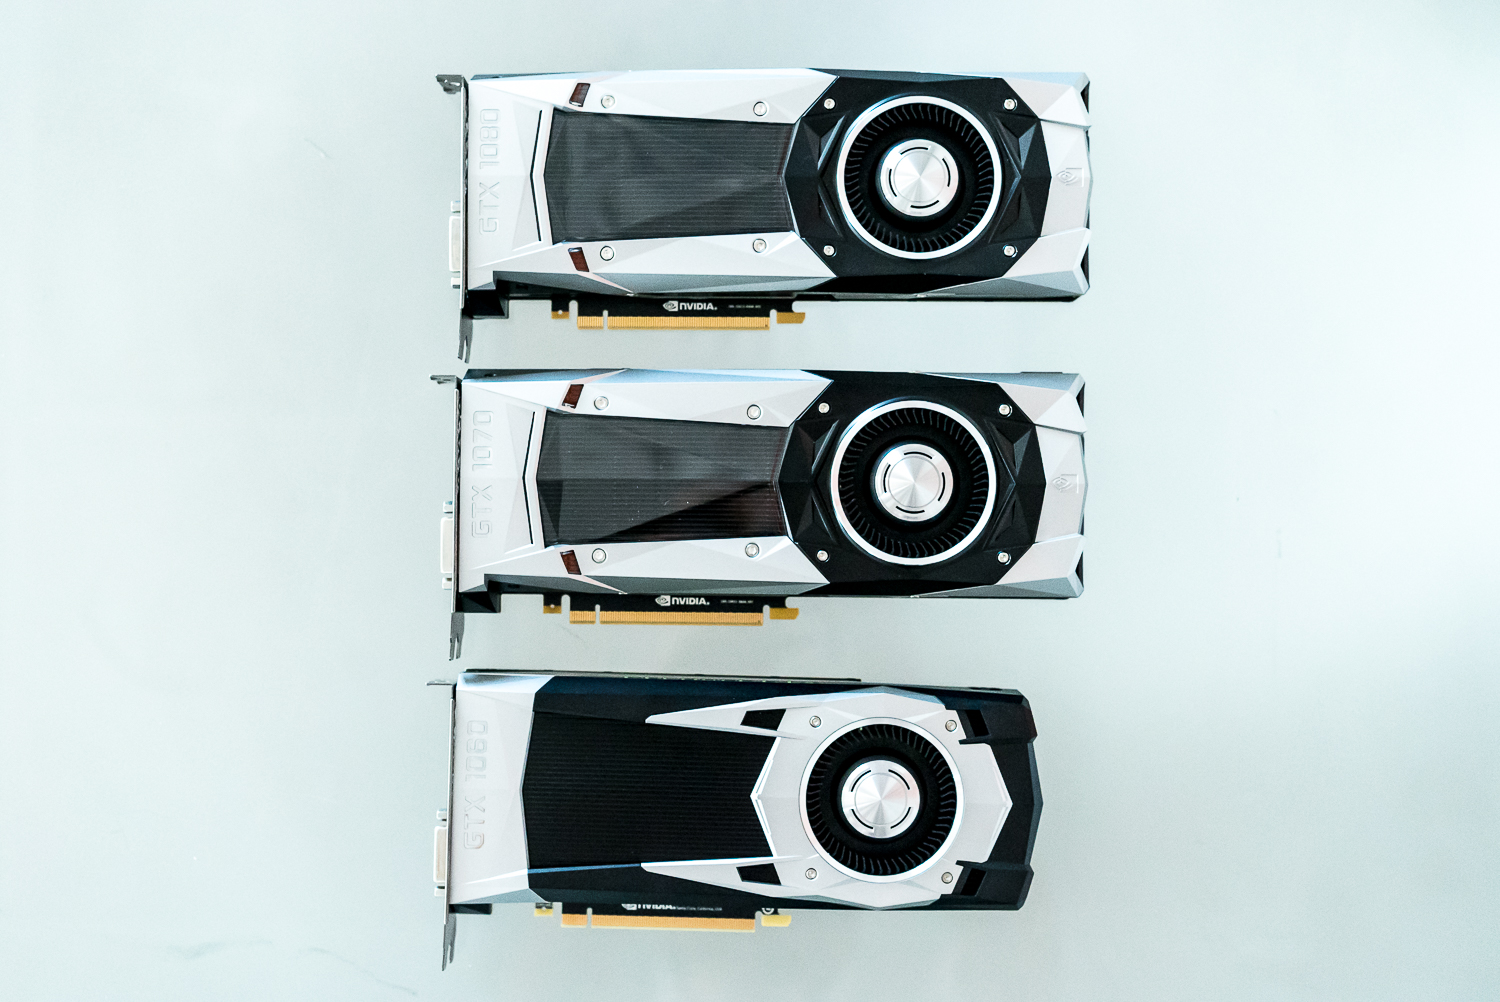 Nvidia GTX 1060 review: The new best budget graphics card